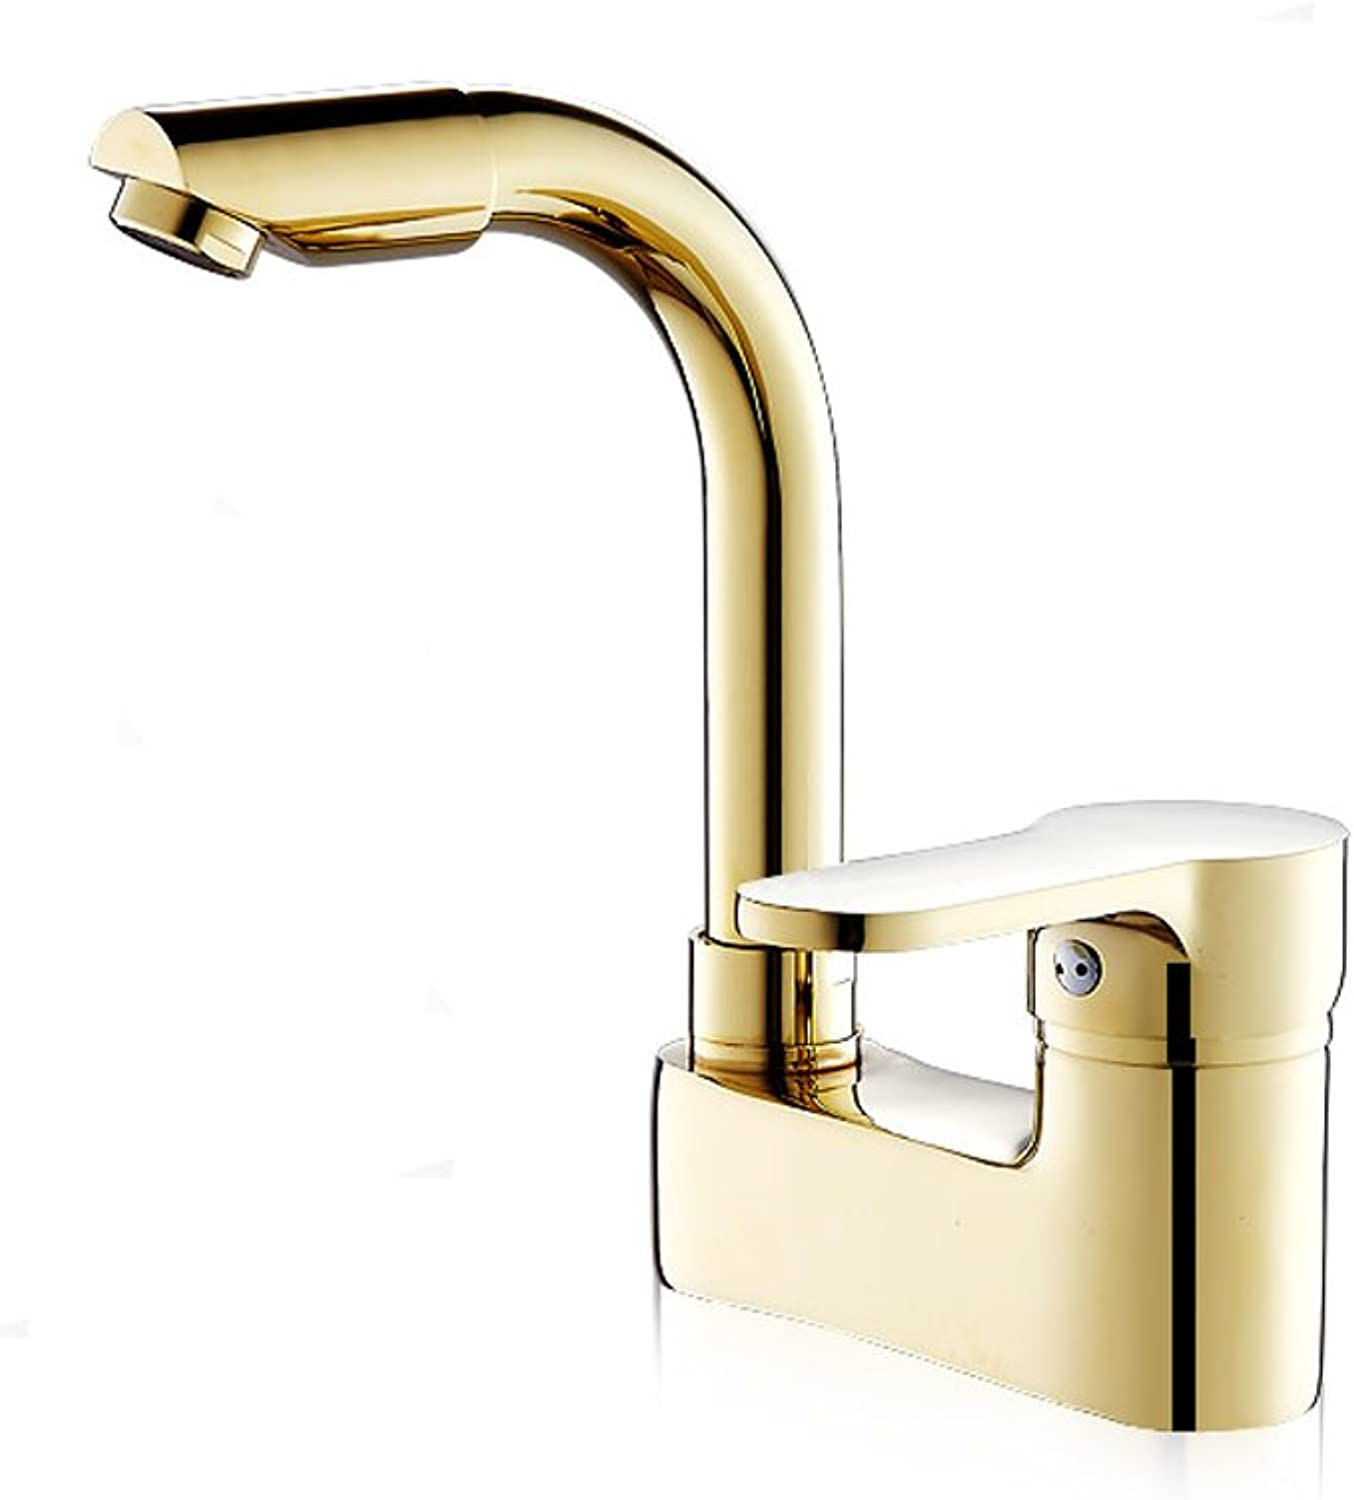 AJZGF European style double basin faucet copper swivel hot and cold faucet